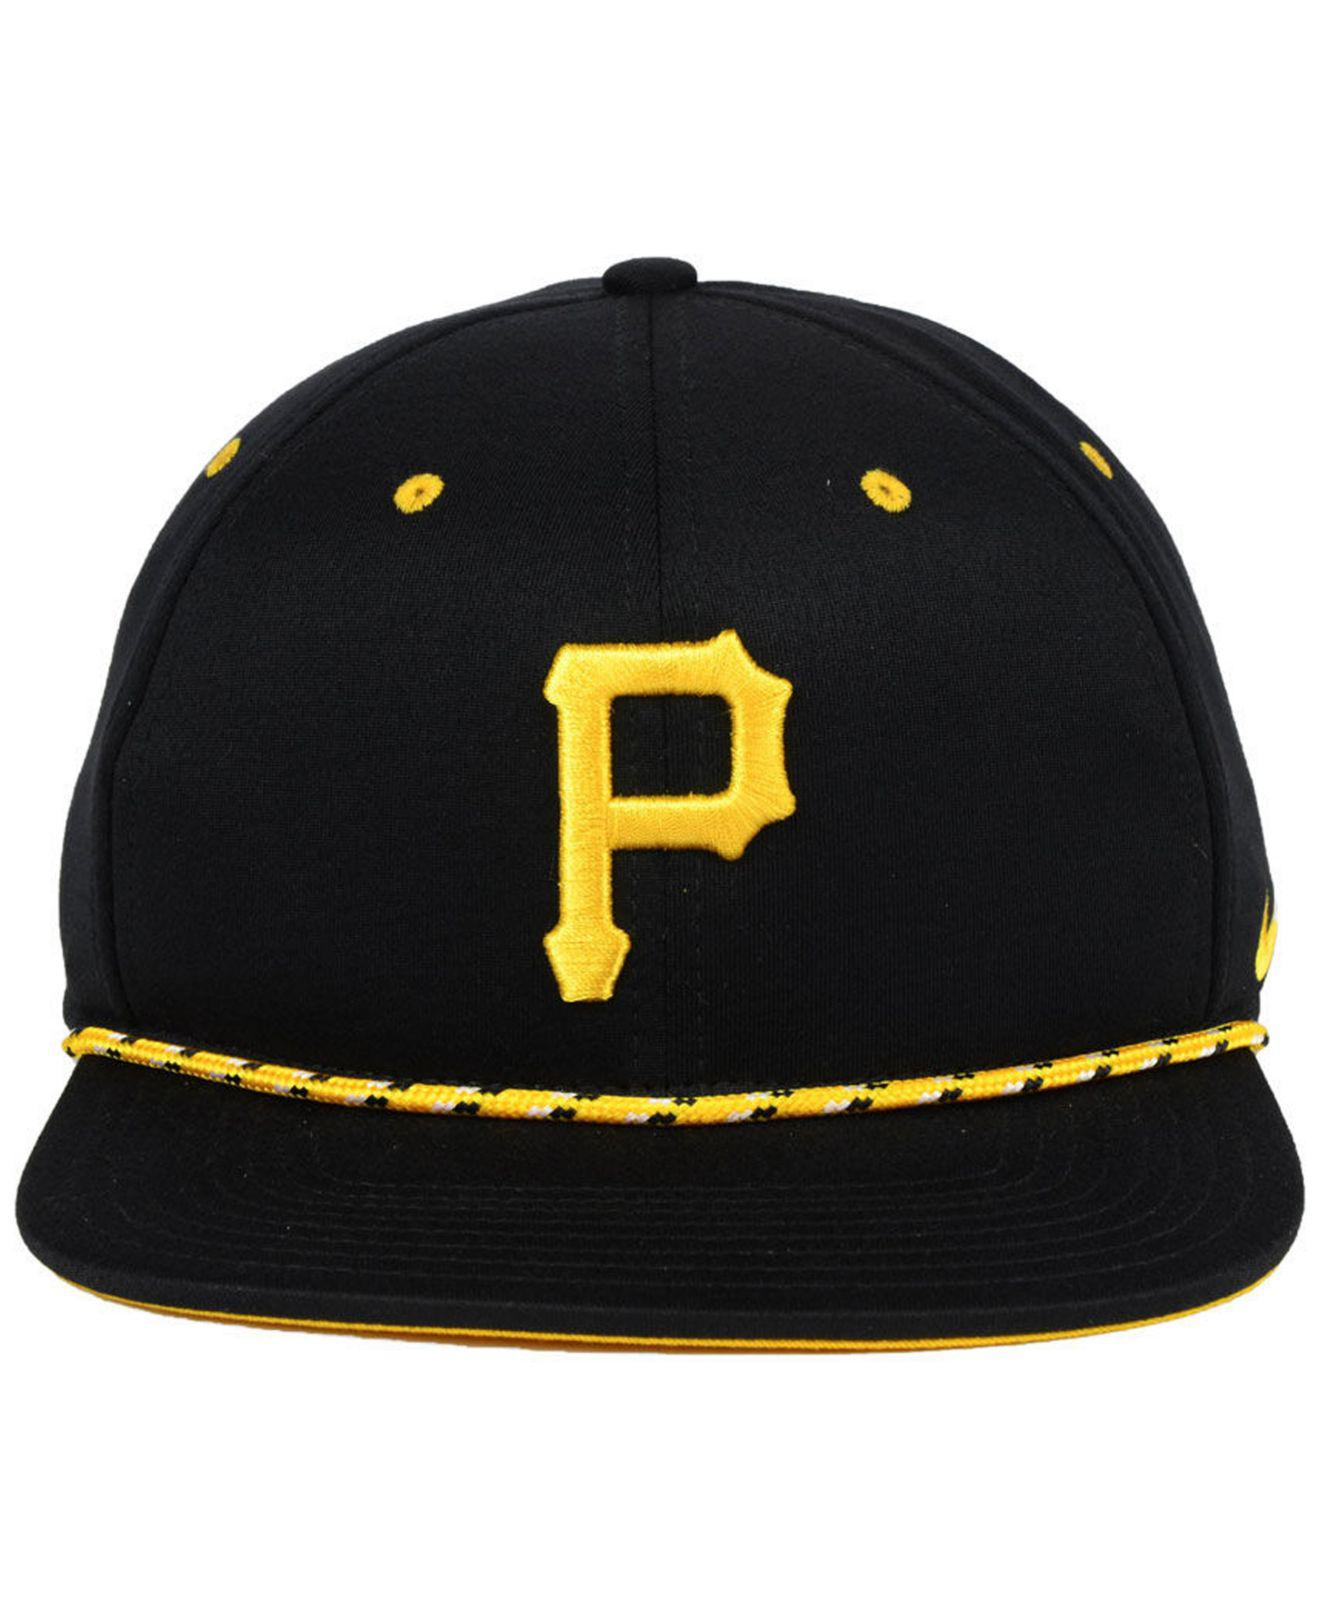 3909a7c6b italy pittsburgh pirates nike mlb team color reflective swooshflex ...